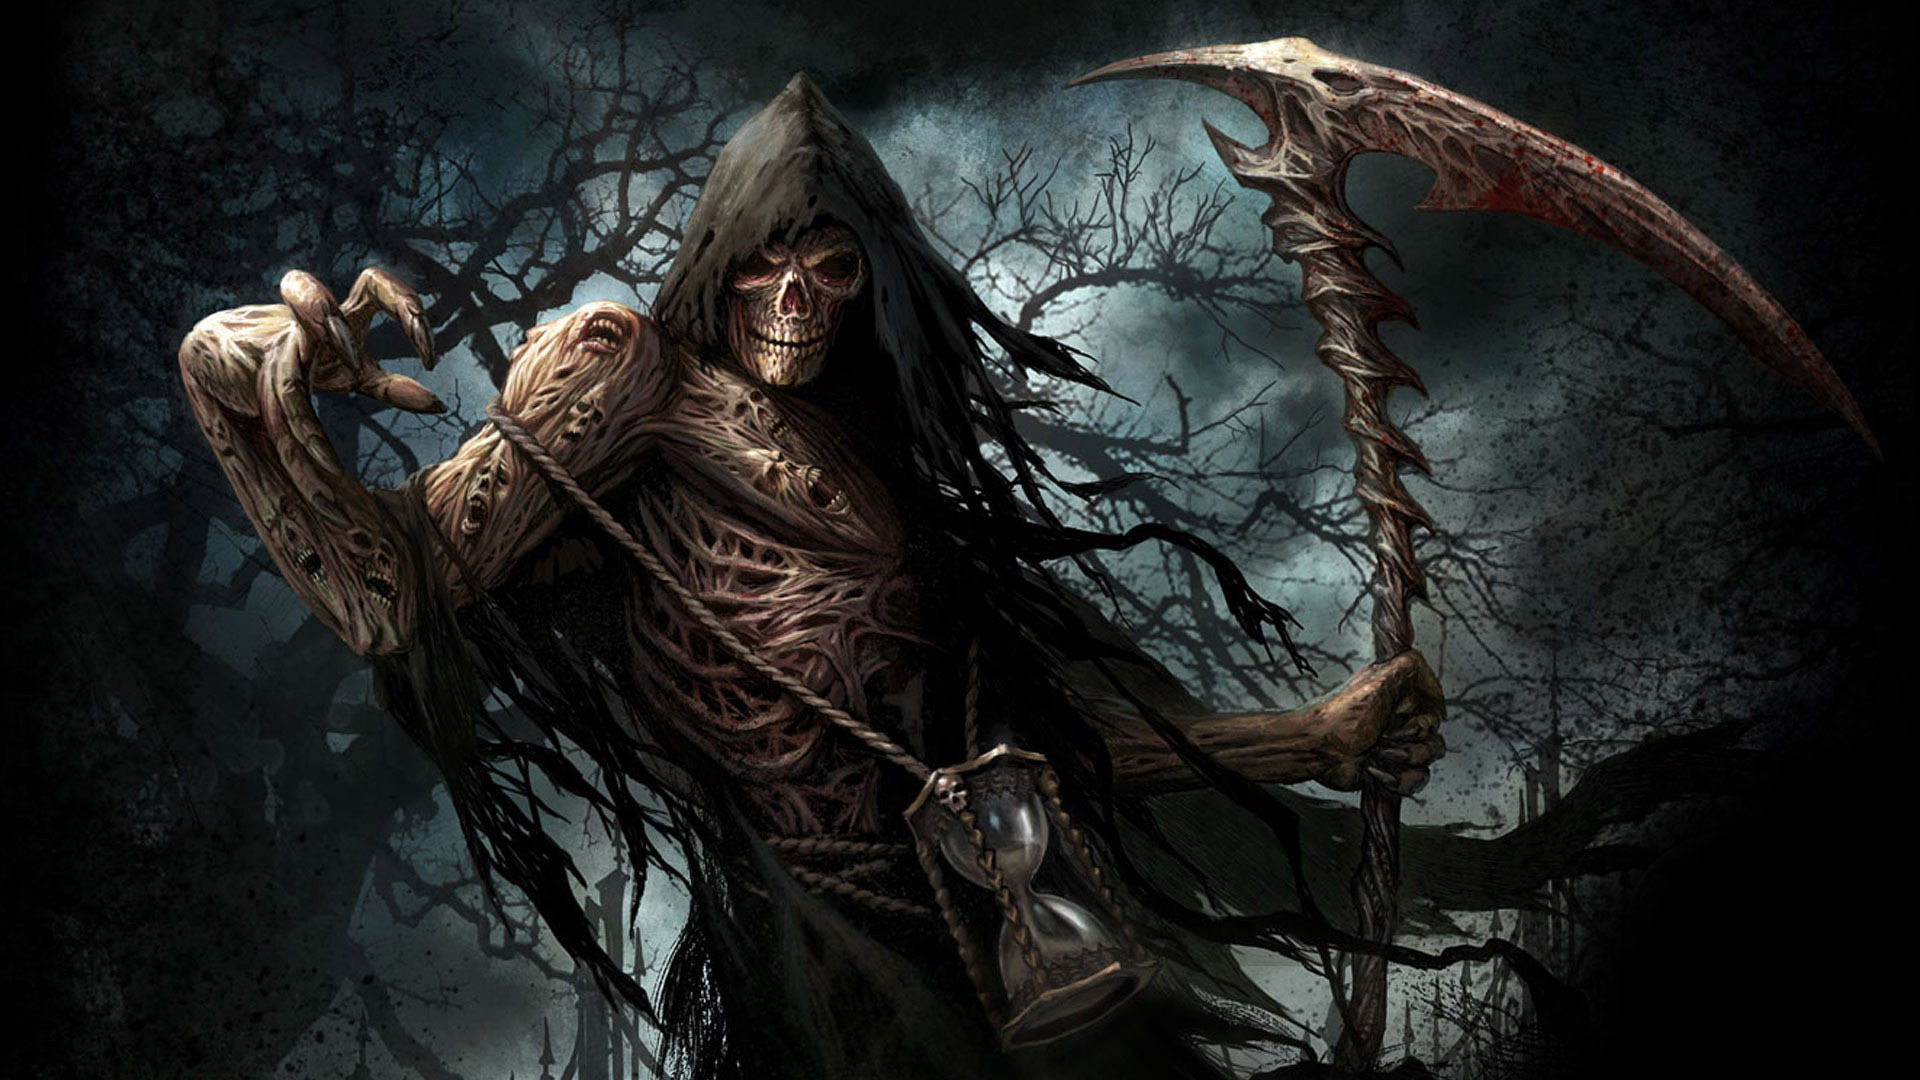 Awesome Grim Reaper HD Wallpaper Download 1920x1080